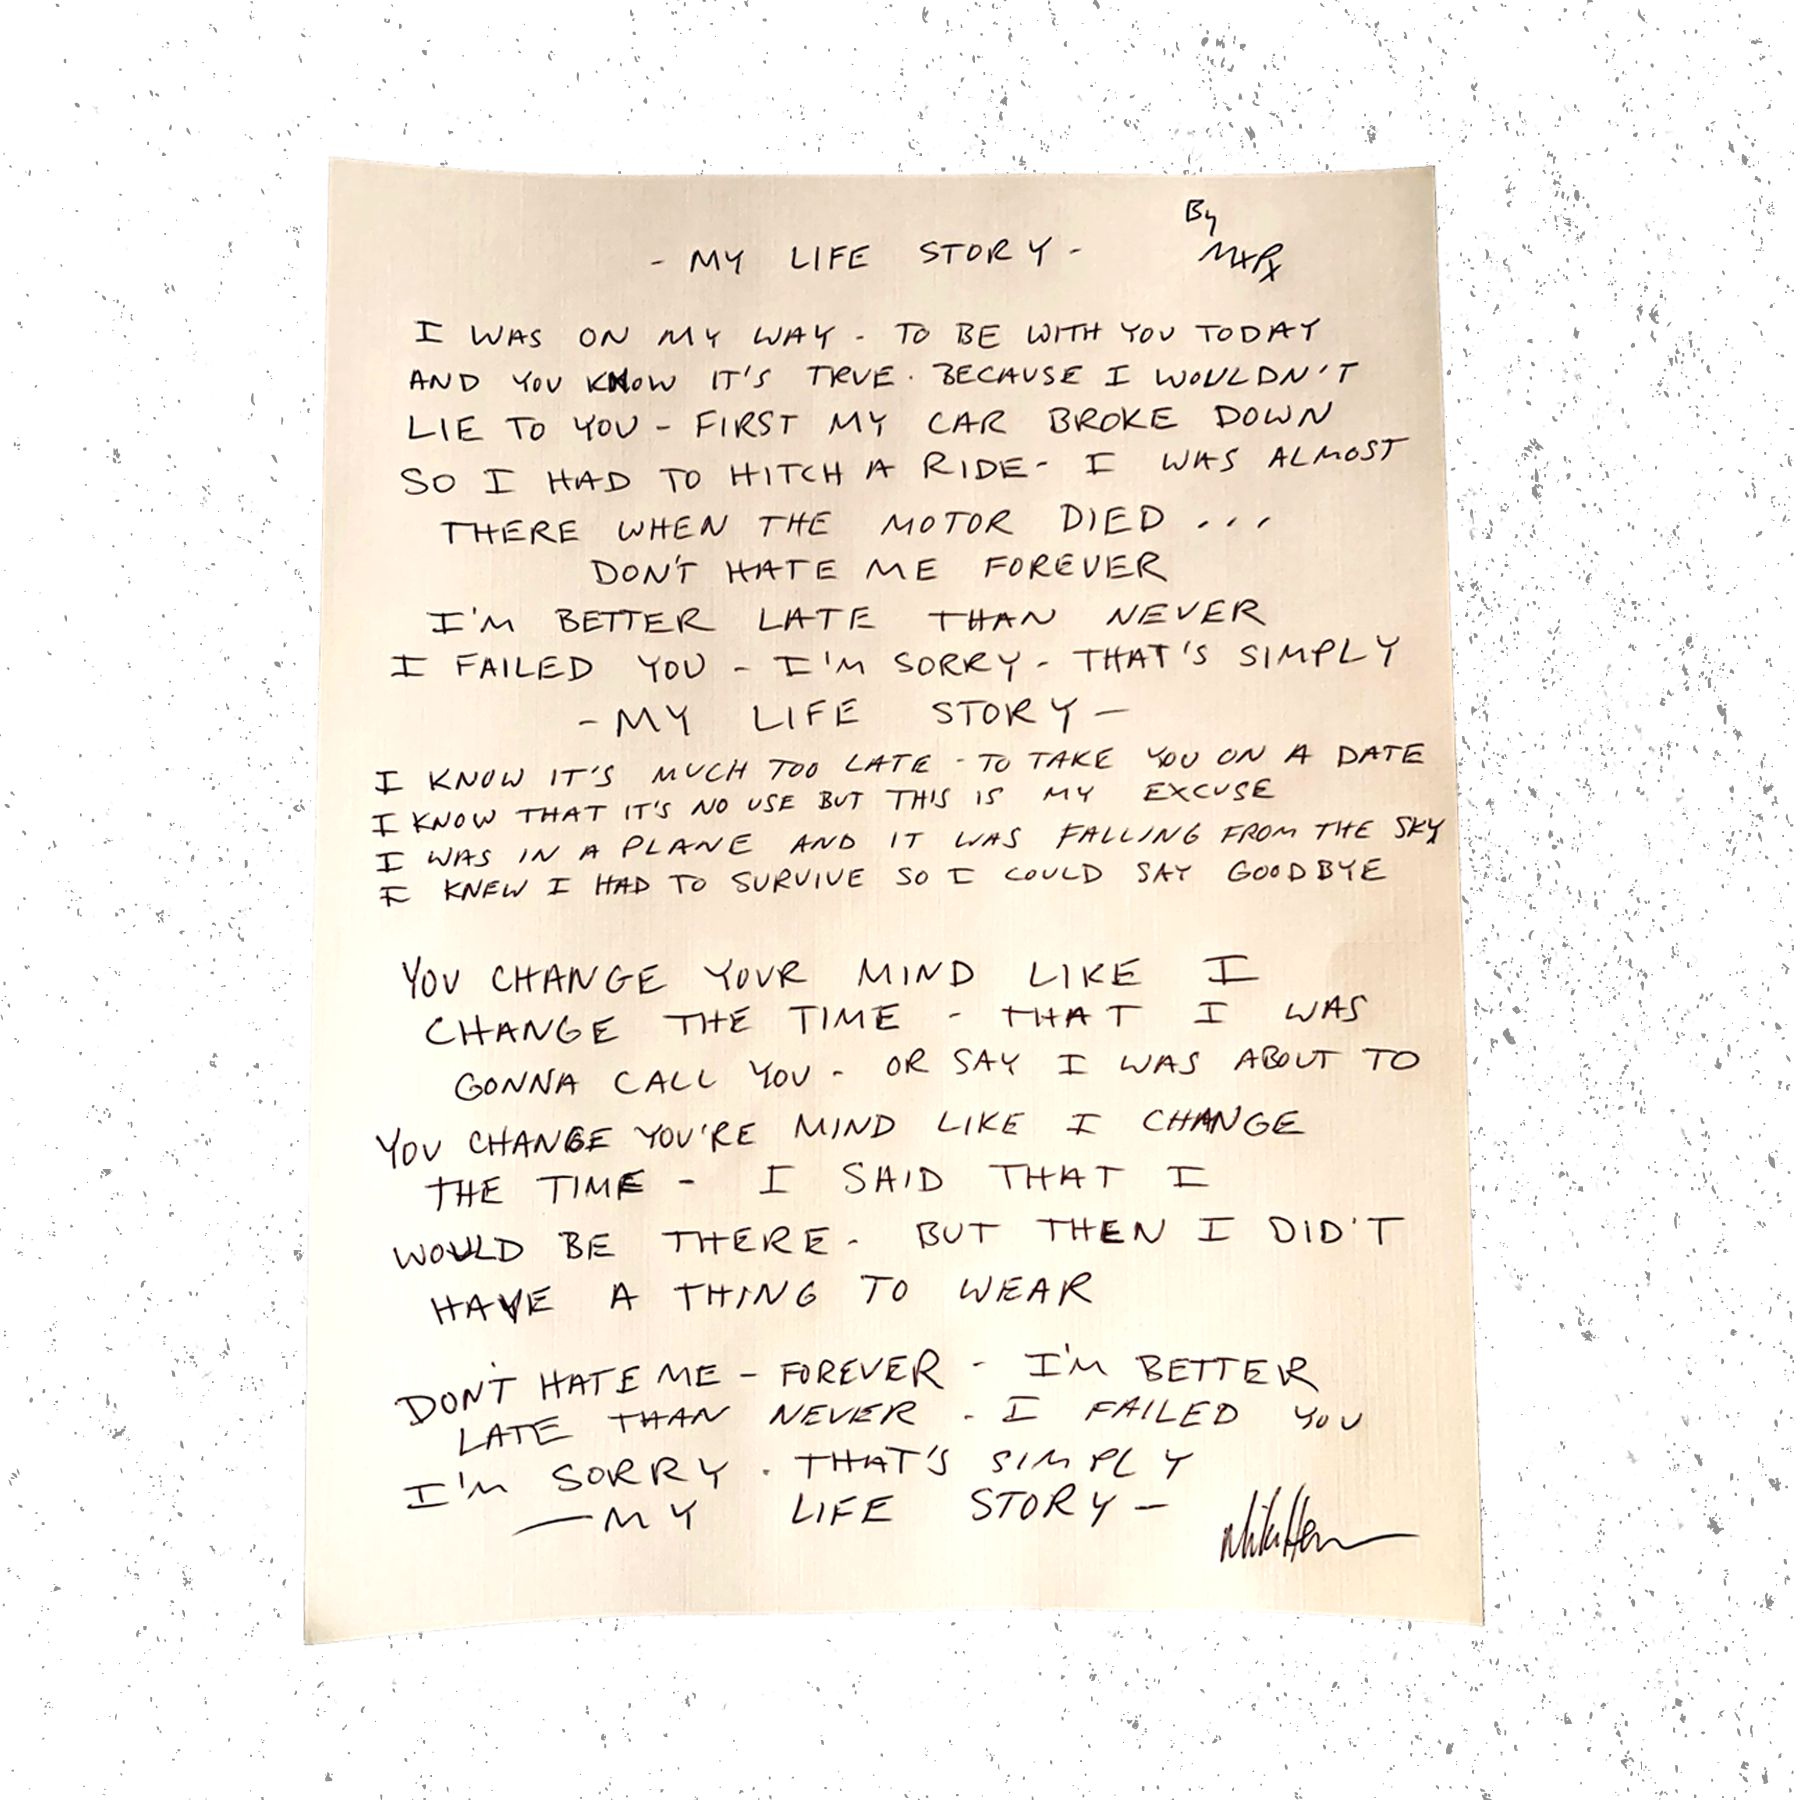 LYRIC SHEETS - HANDWRITTEN BY MIKE HERRERA